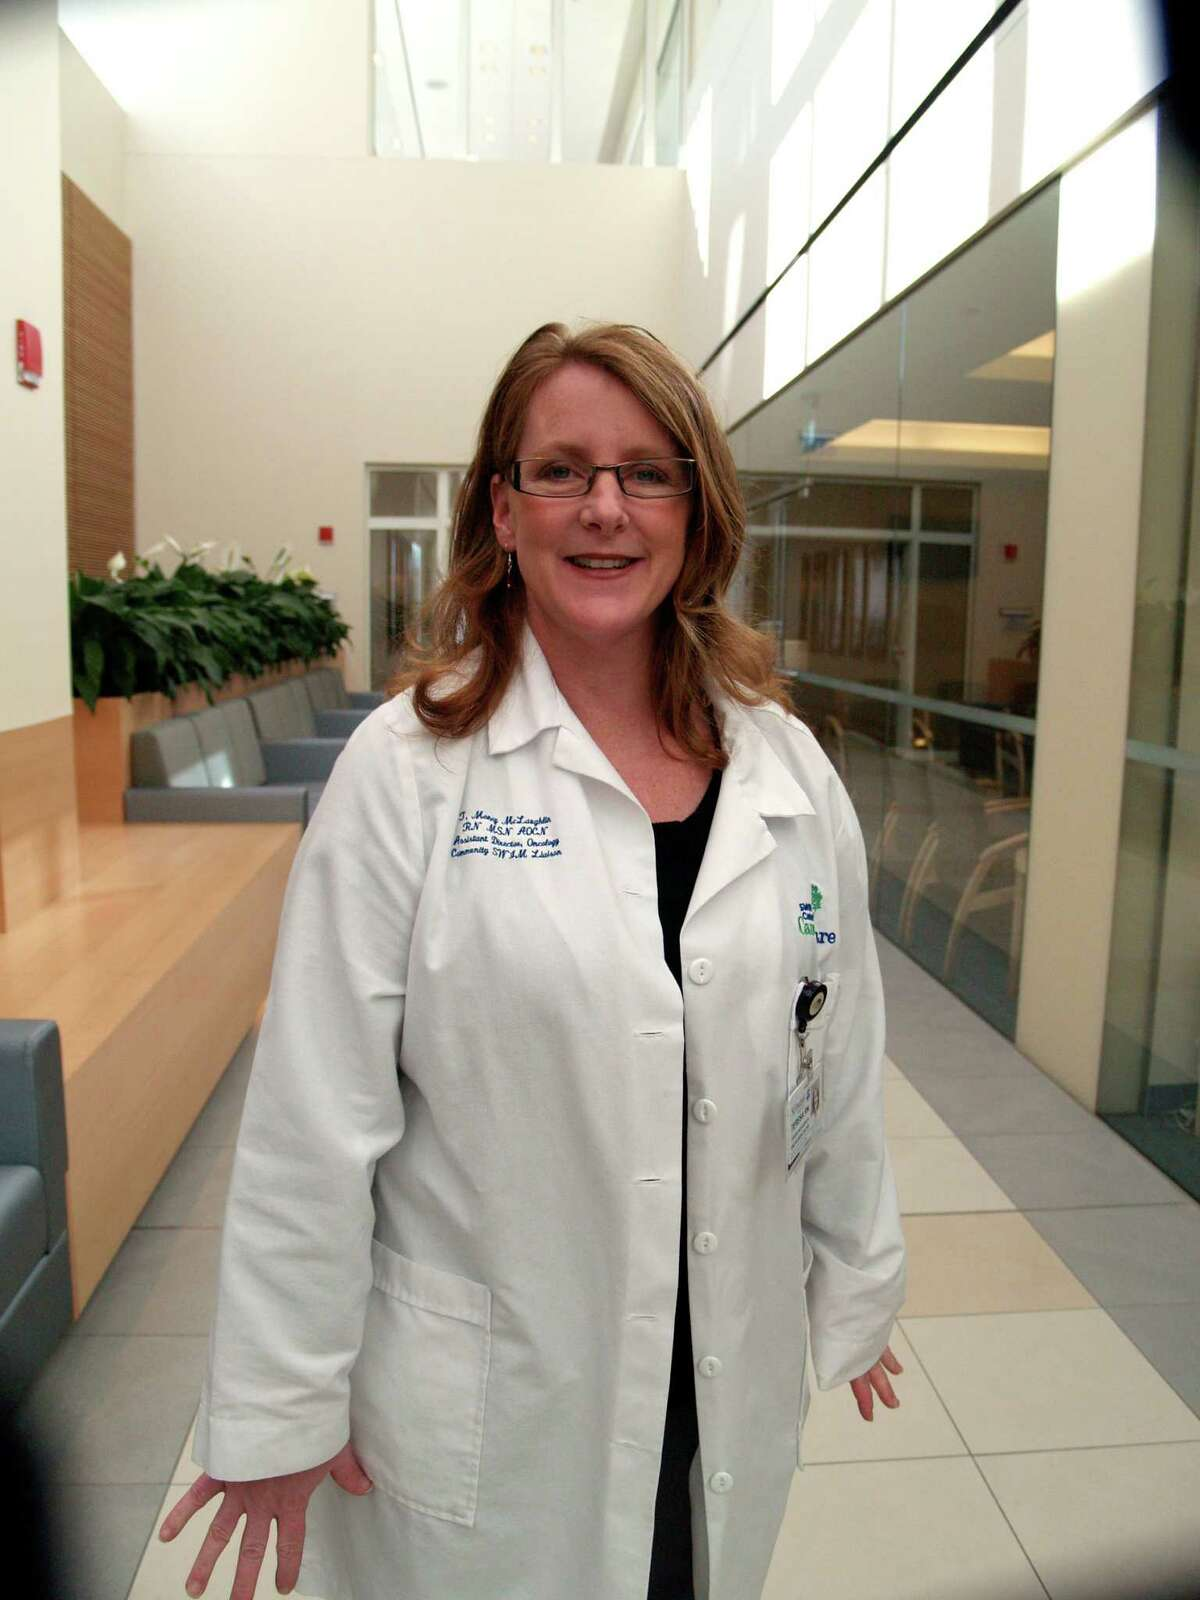 Teresa Money McLaughlin, director of integrative oncology at St. VincentâÄôs Medical Center in Bridgeport, Conn. is also a nurse navigator. Navigators help people through chronic disease management.